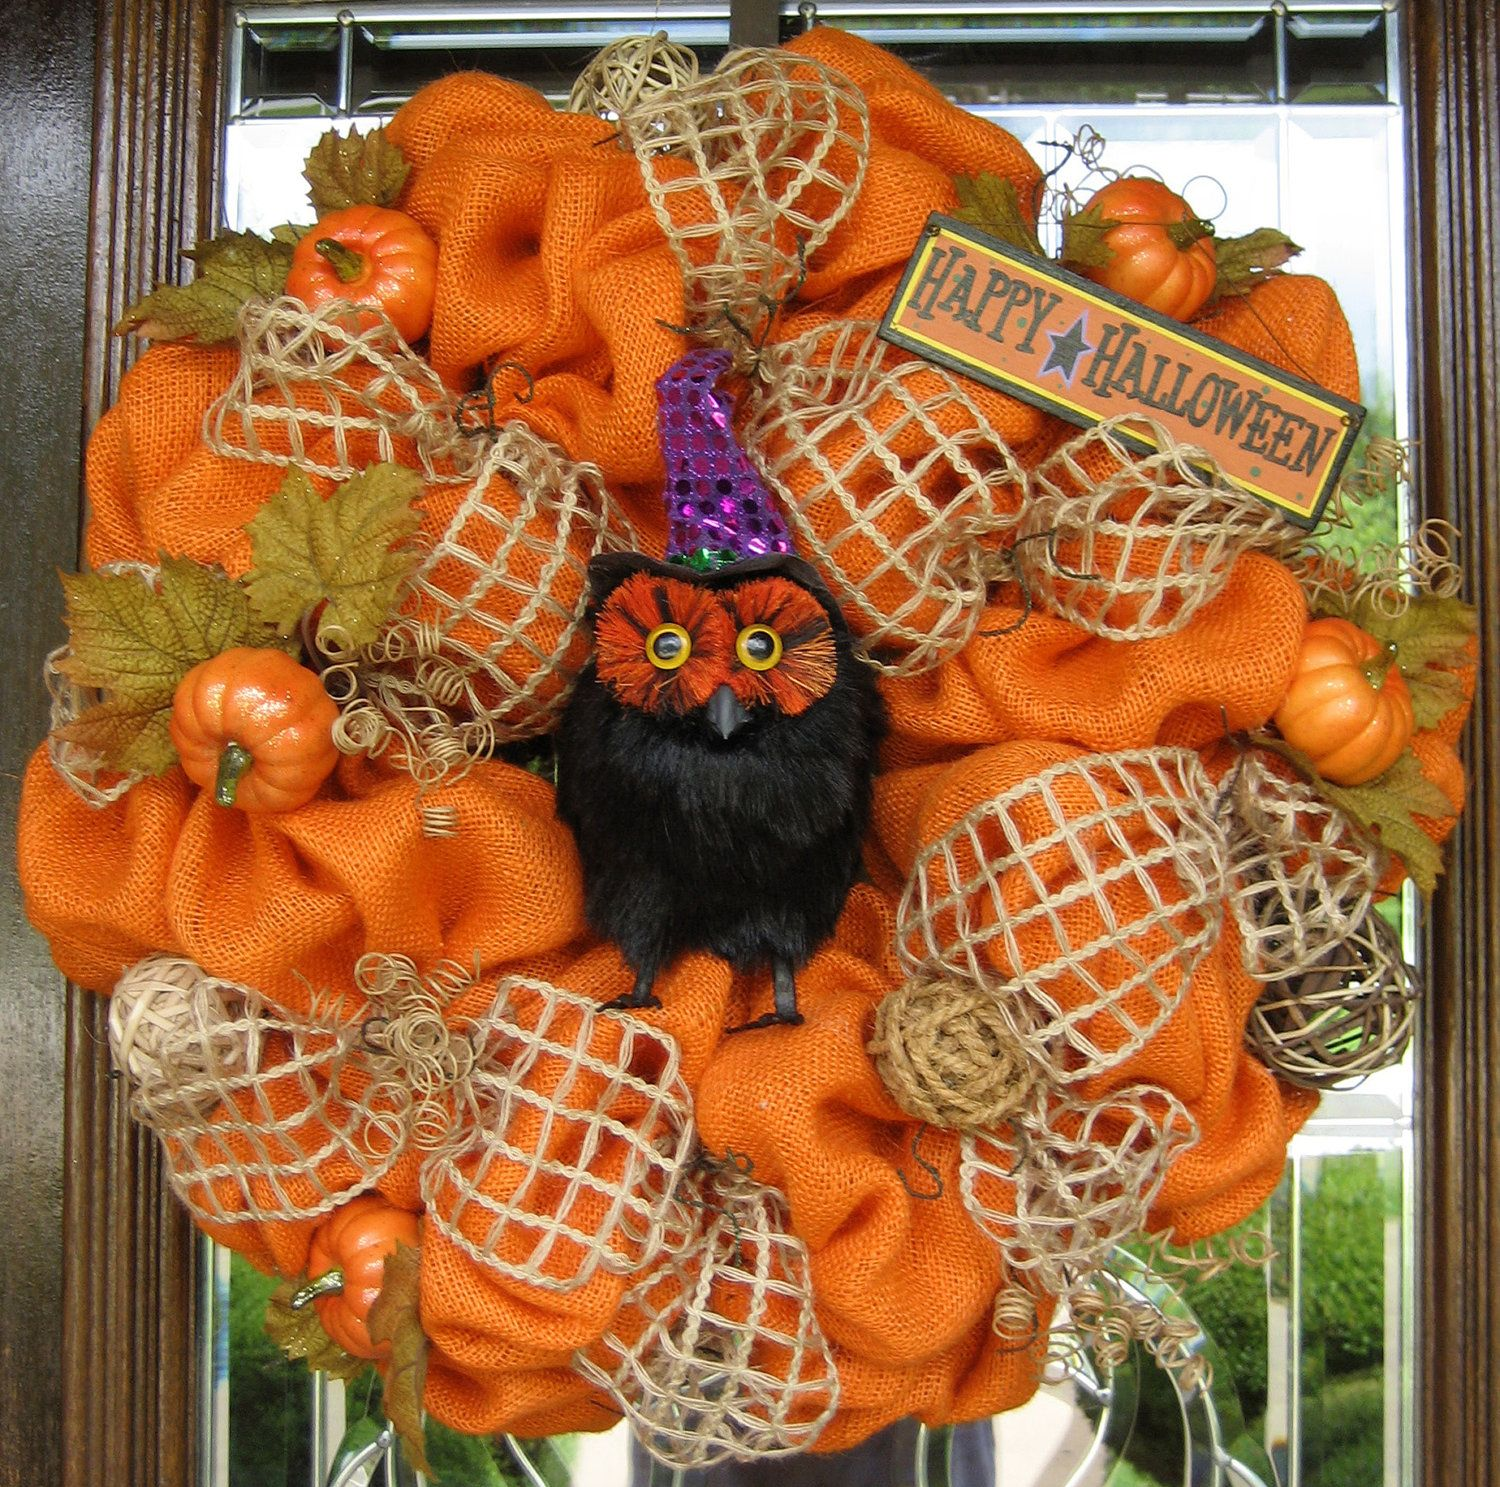 Natural Halloween Decorations: This Natural And Rustic Burlap Halloween Wreath Is Made